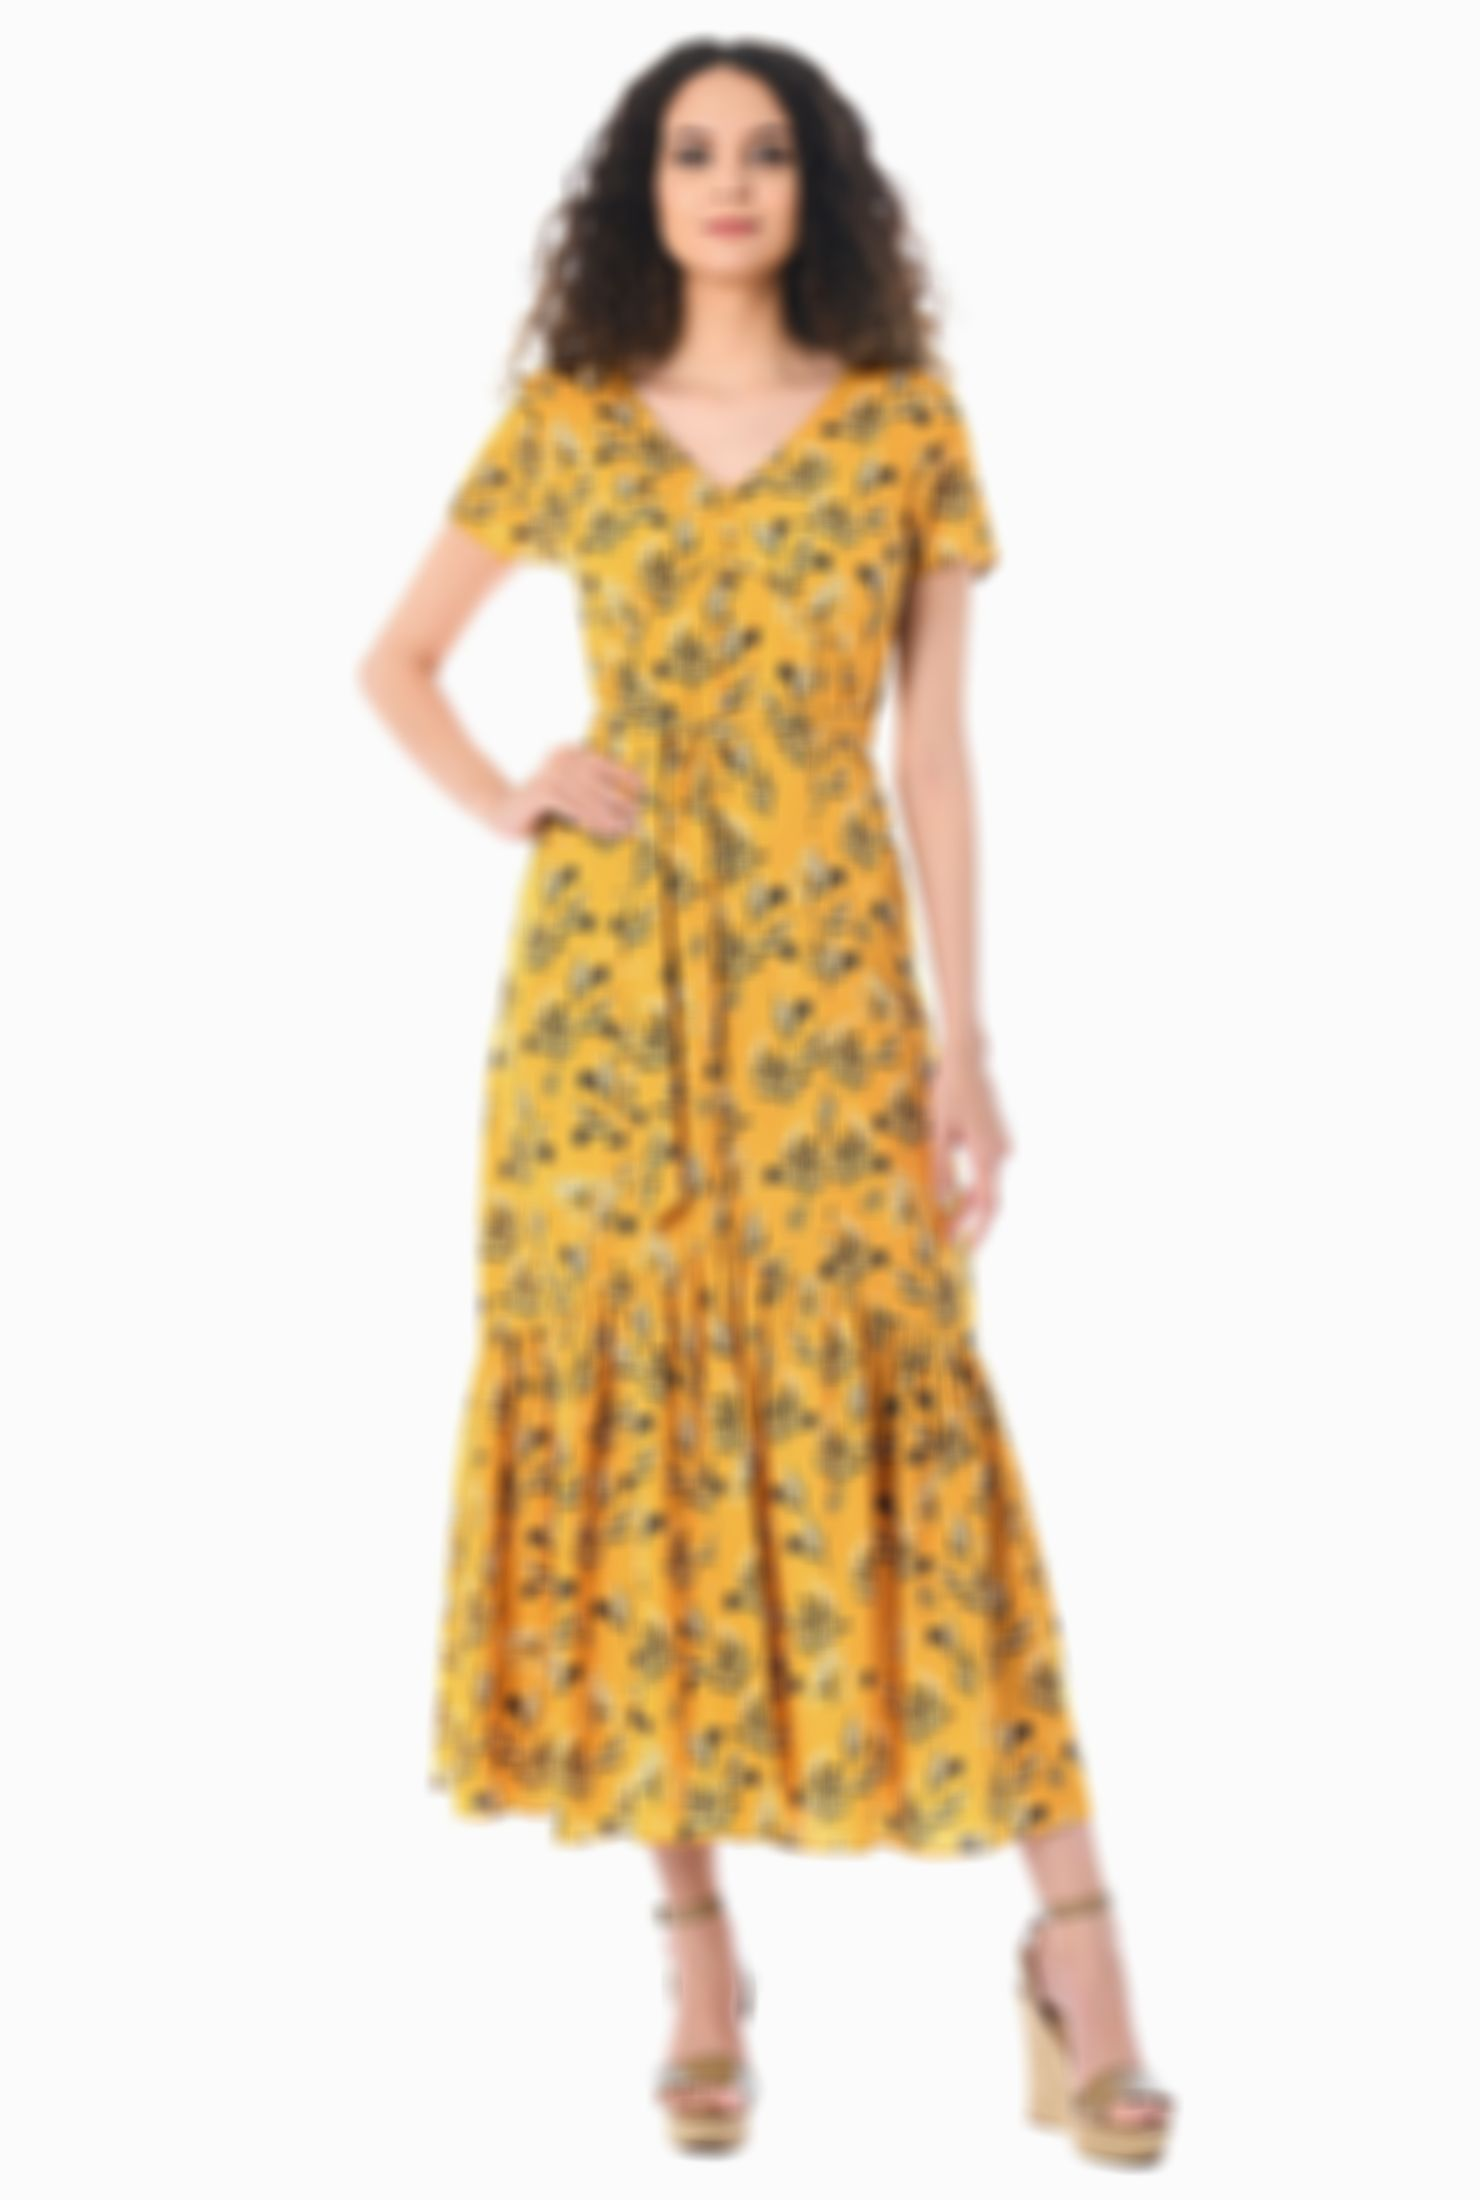 Printed Dresses Floral Dresses Summer Dresses Petite Formal Dresses & Gowns Plus Size Elegant Evening Gowns Gown Dress Free Shipping